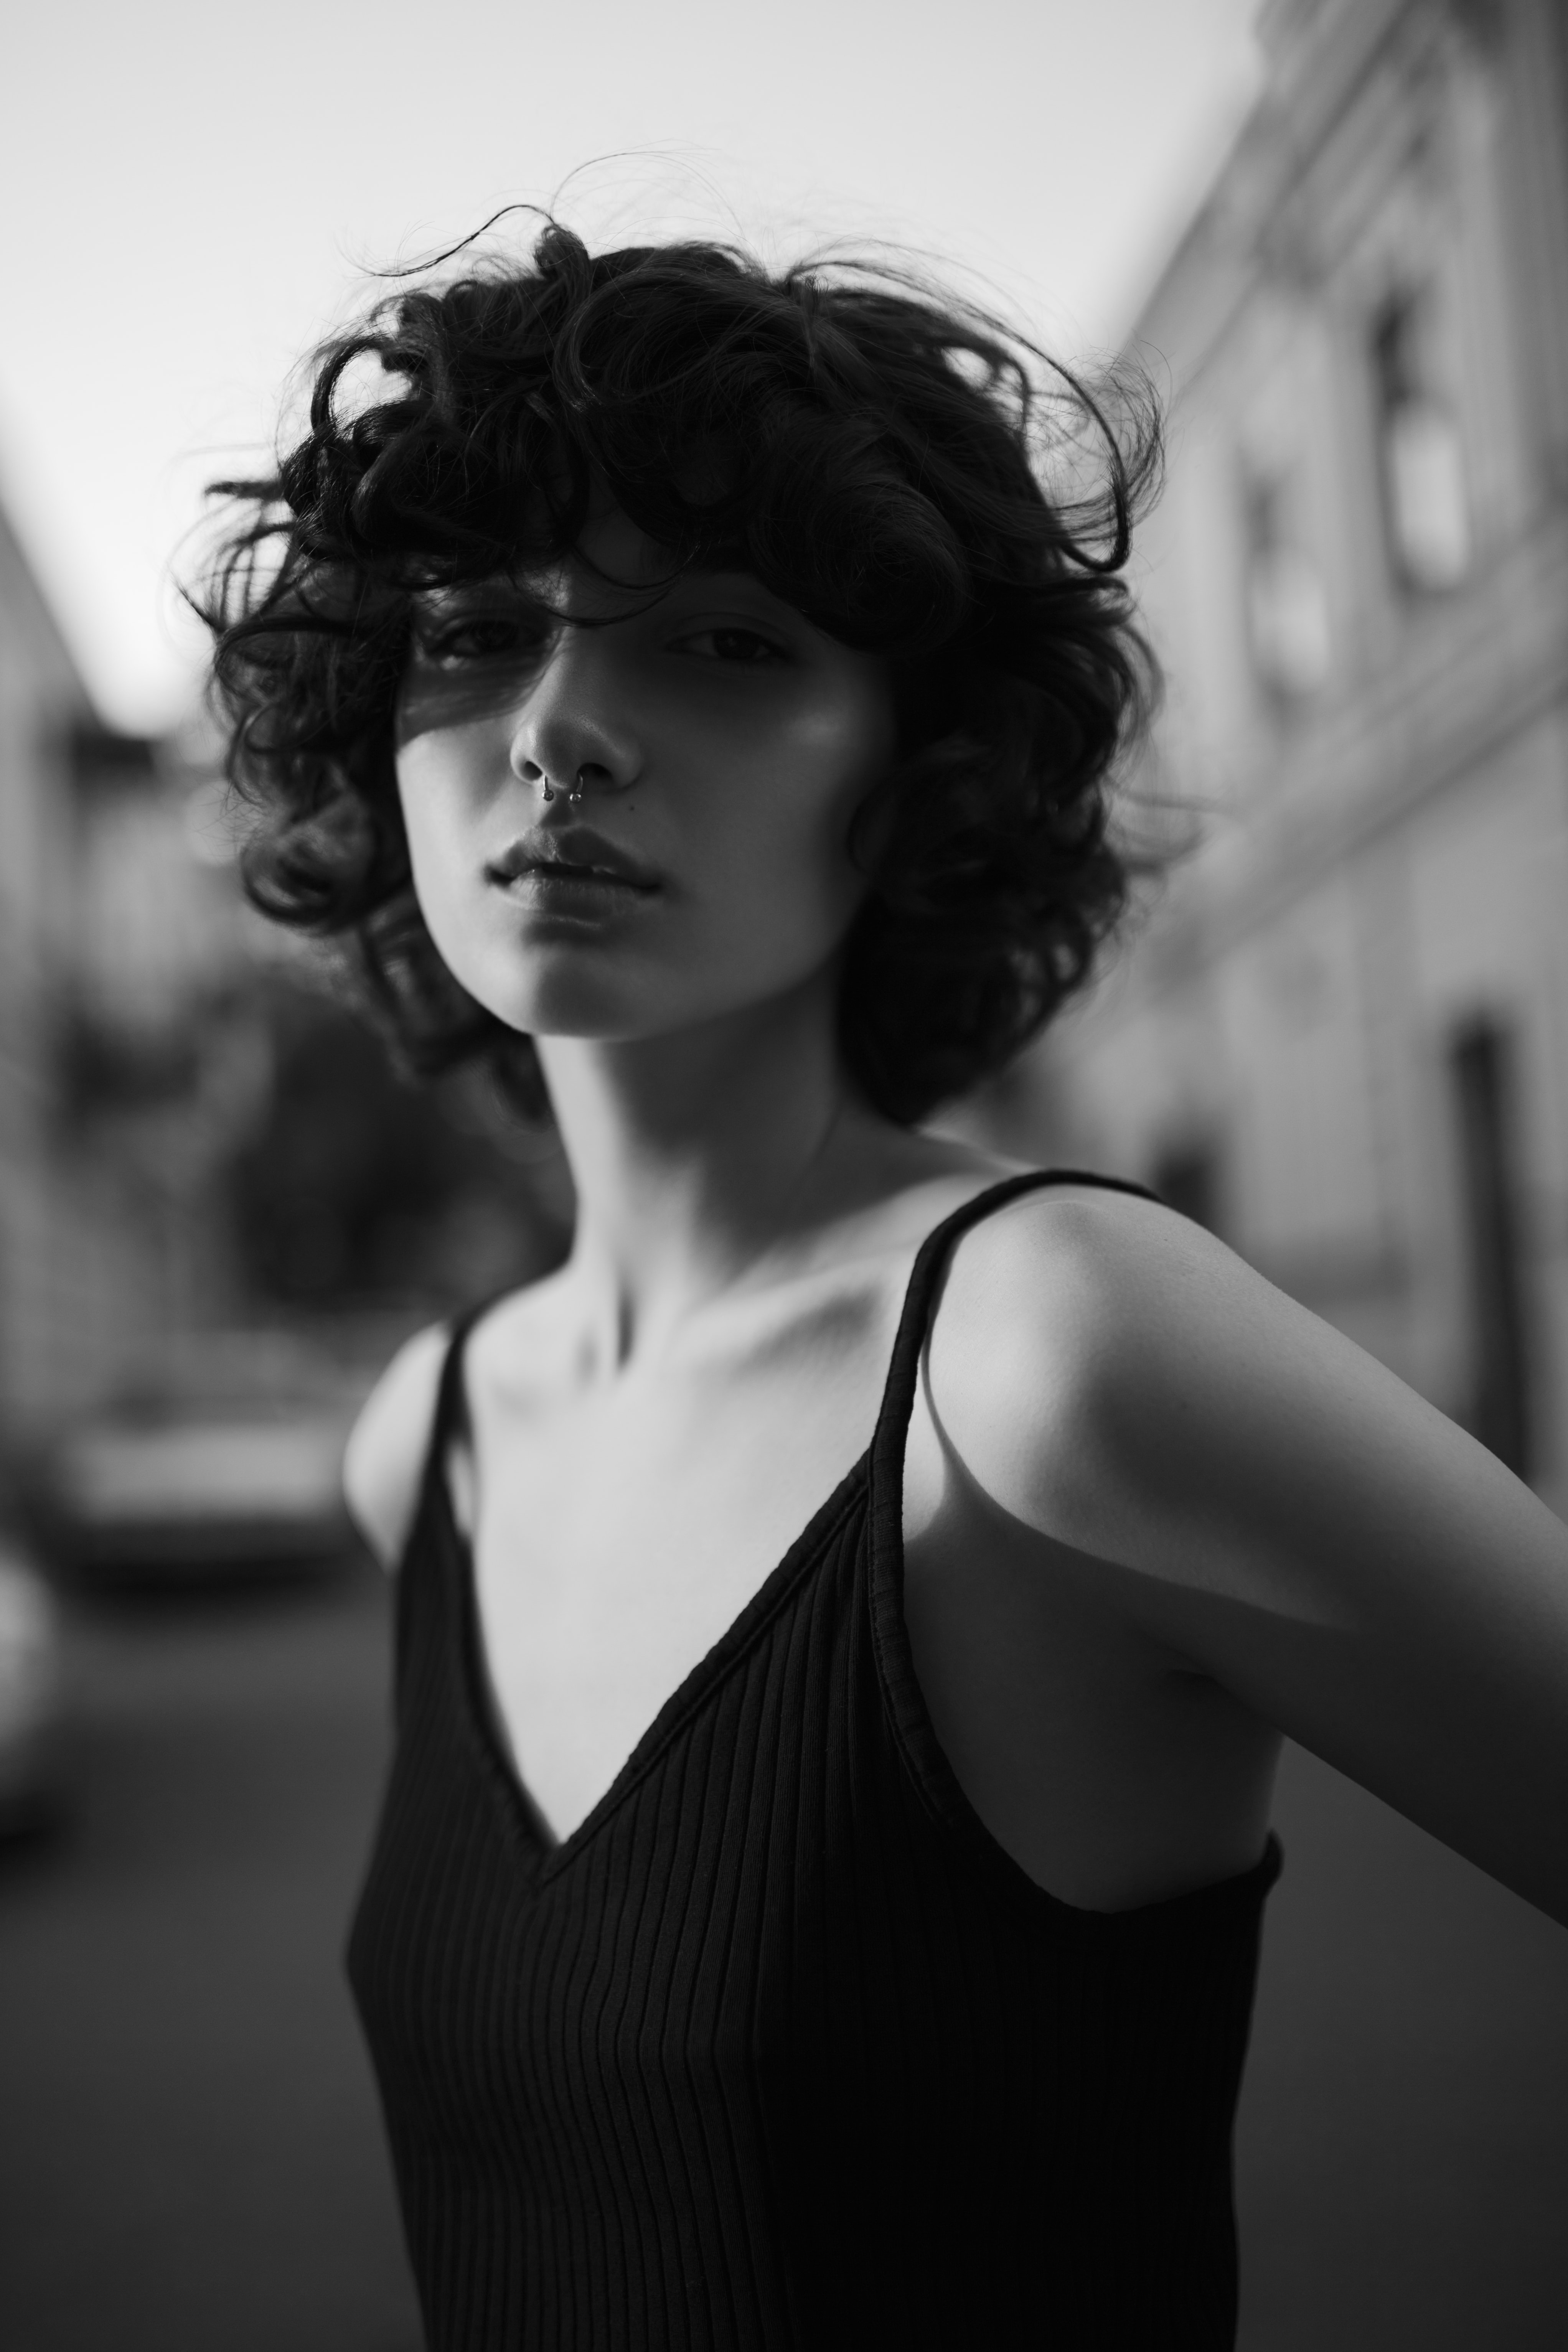 grayscale photo of woman wearing black spaghetti strap top